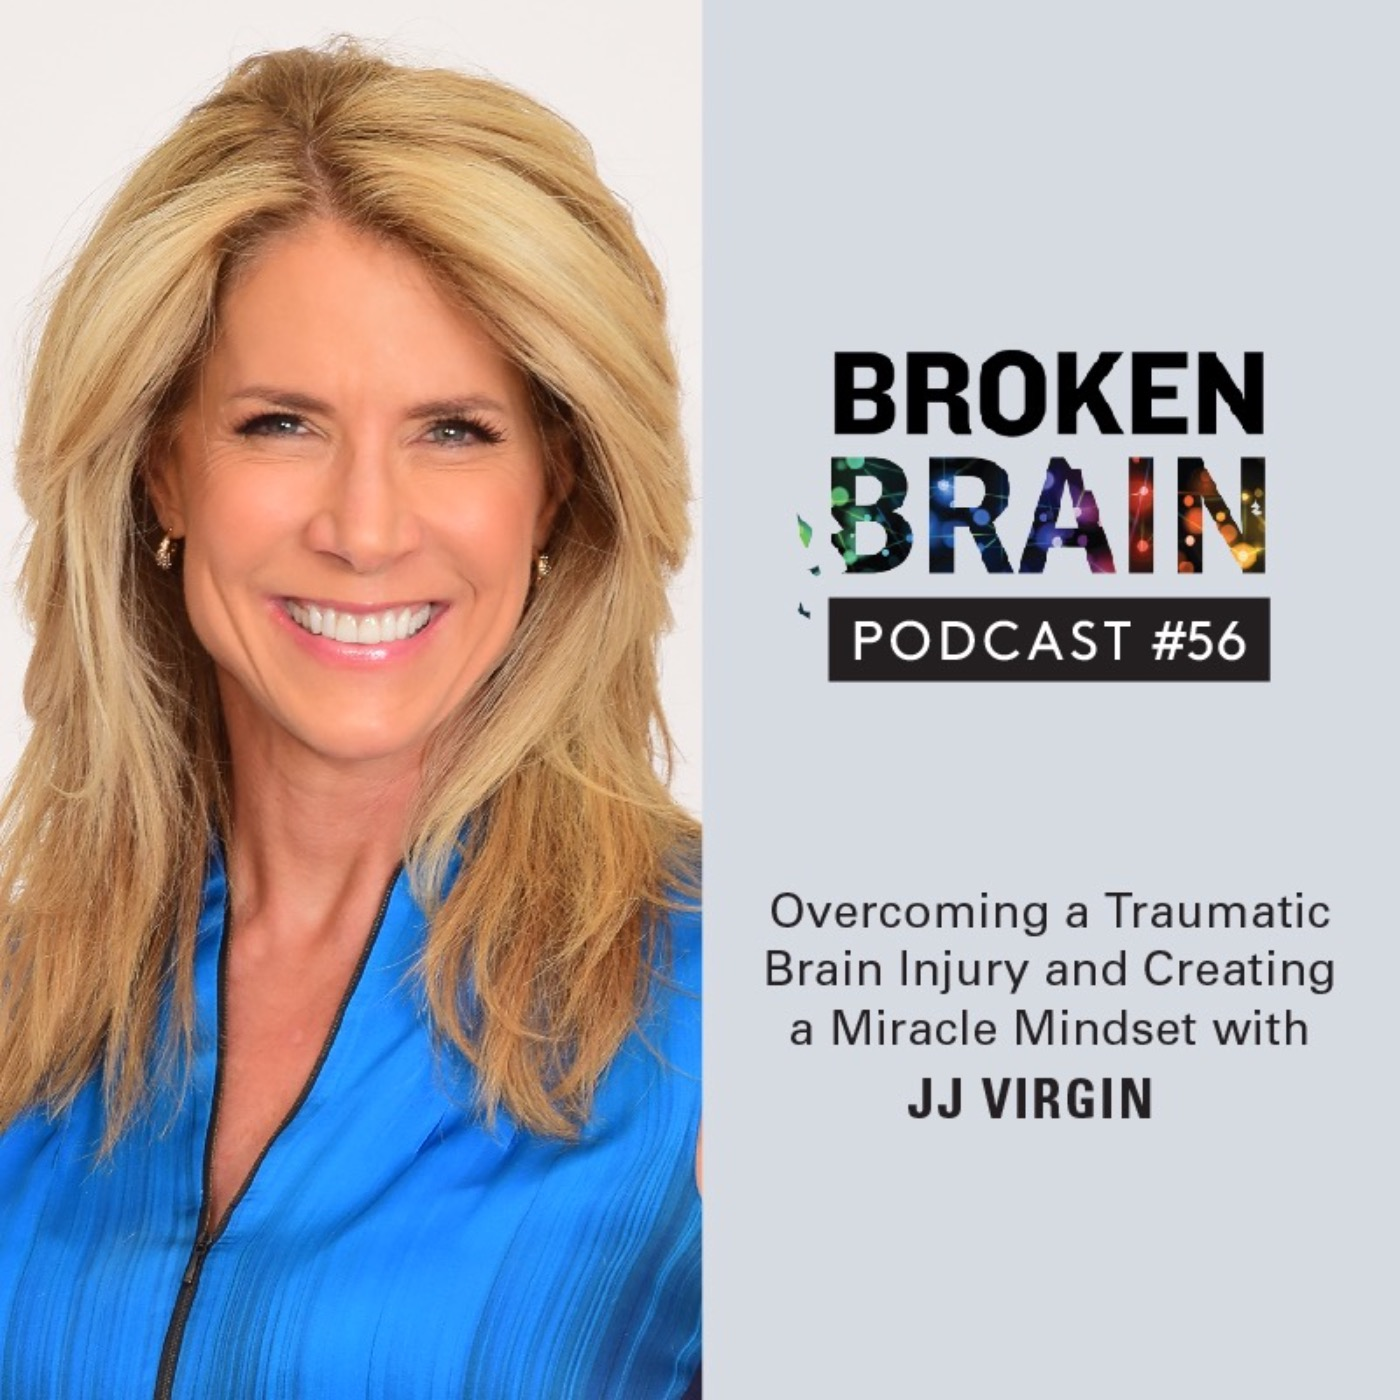 #56: Overcoming a Traumatic Brain Injury and Creating a Miracle Mindset with JJ Virgin